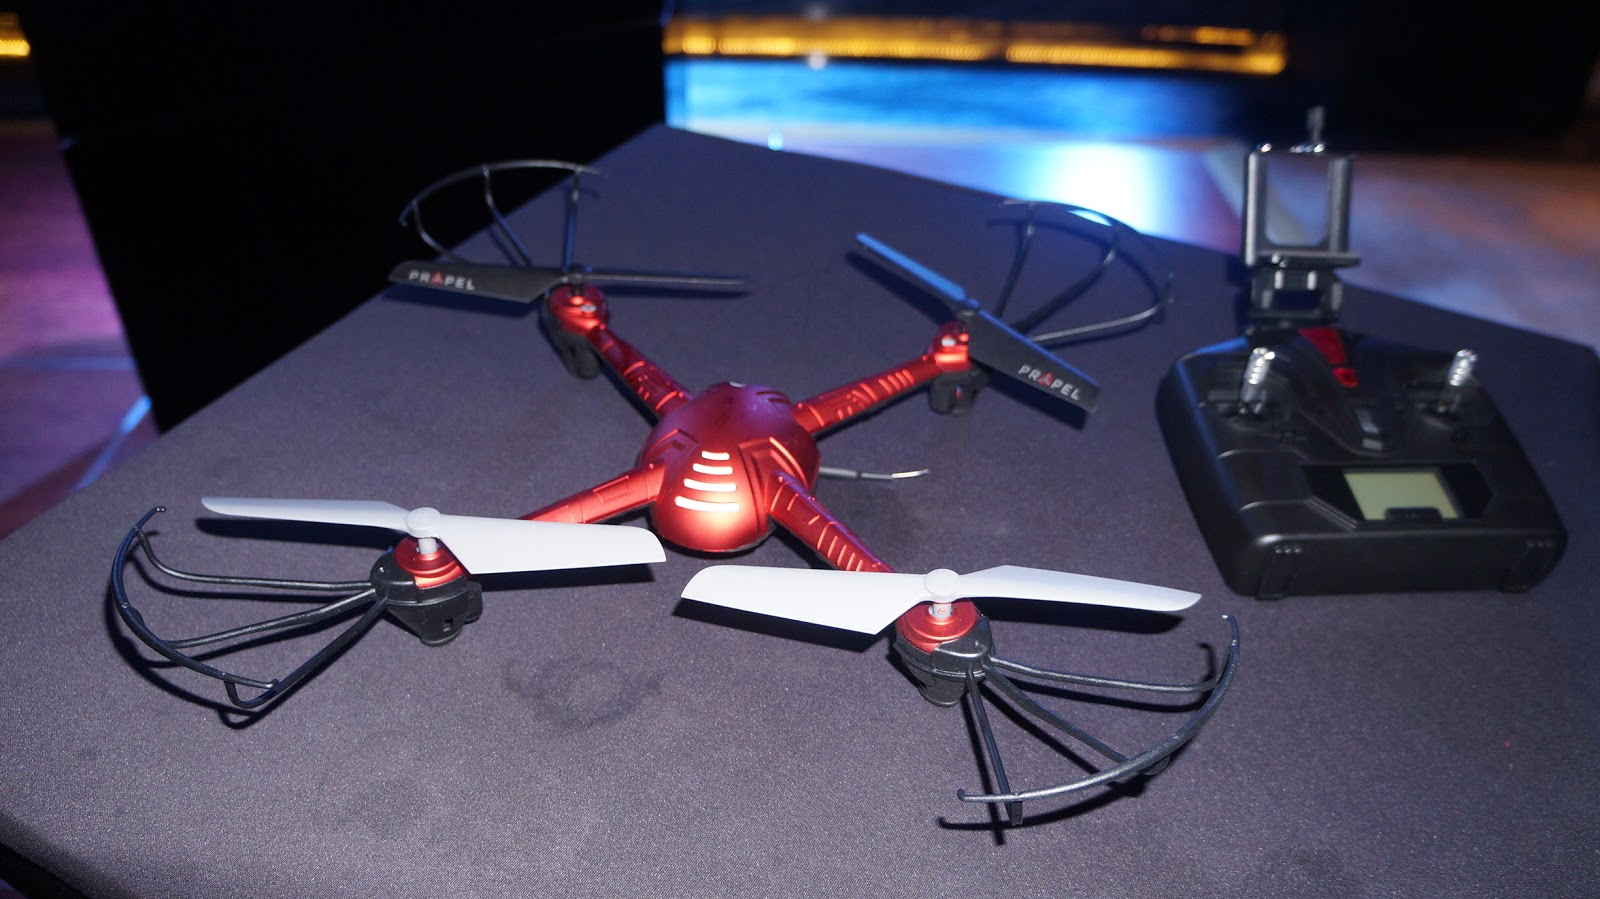 Several Photos Of The Micro Drone And From Event Can Be Found At Our Official Facebook Fan Page Wazzuppilipinas